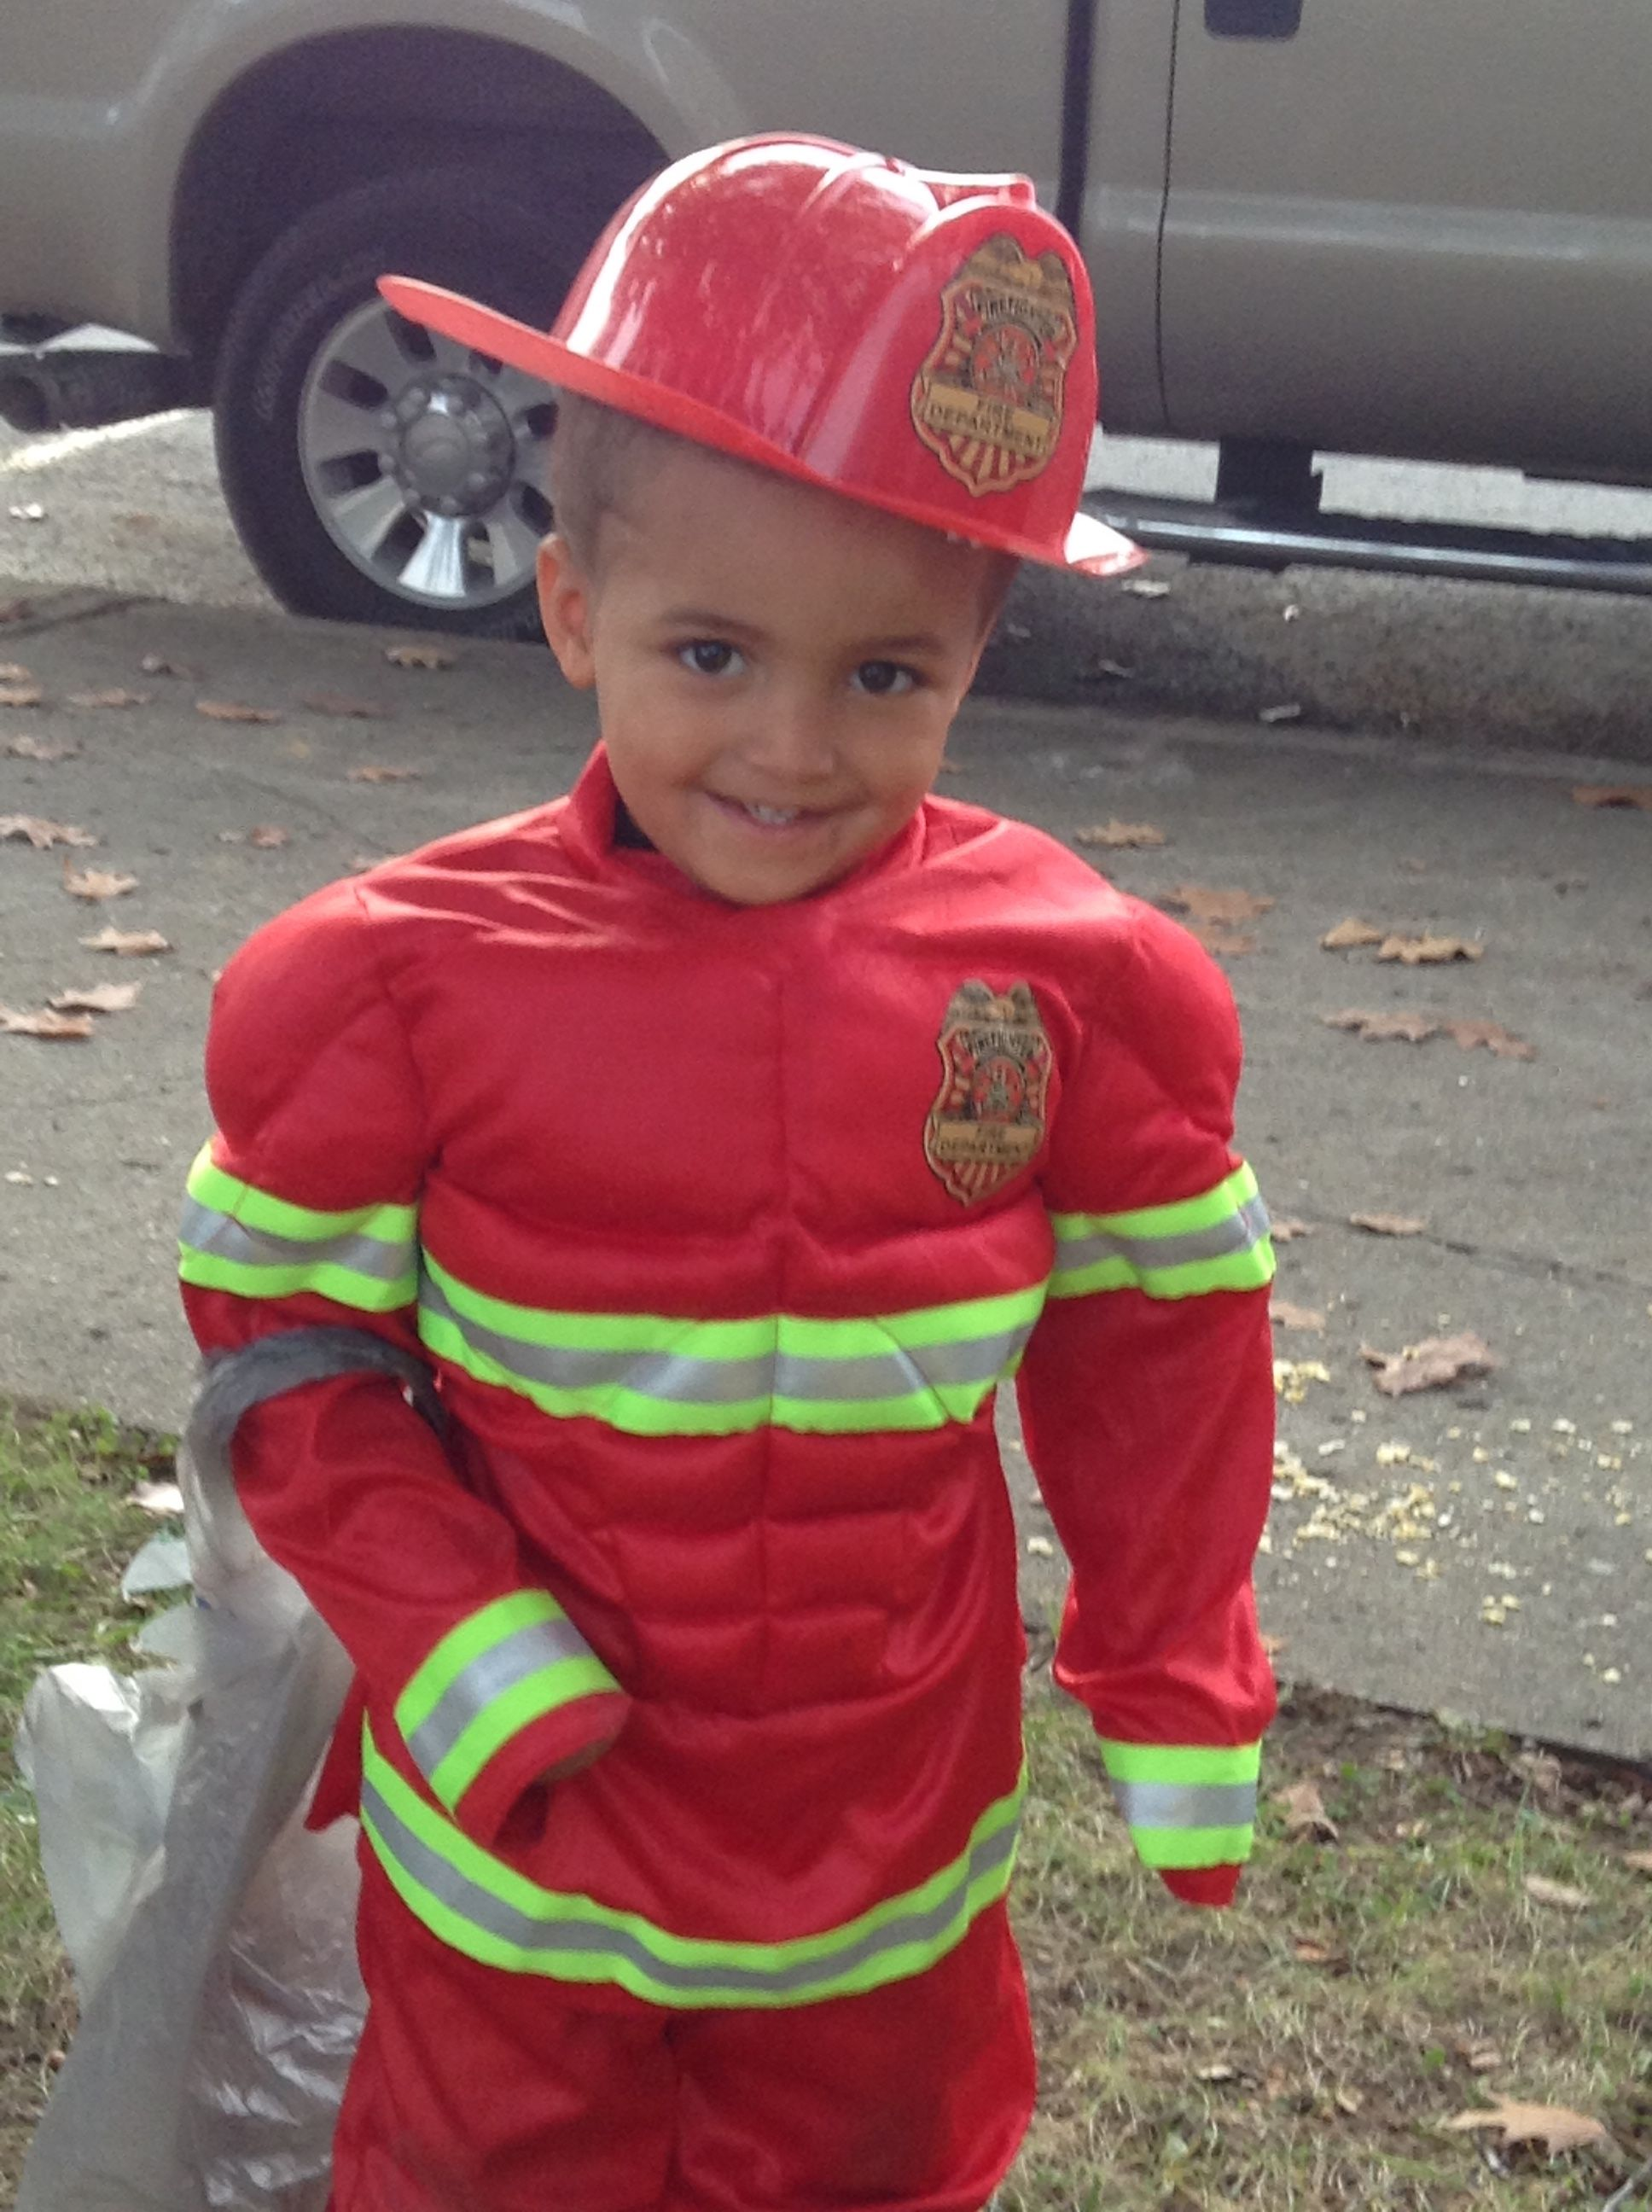 What a cute firefighter in training! He's all smiles for